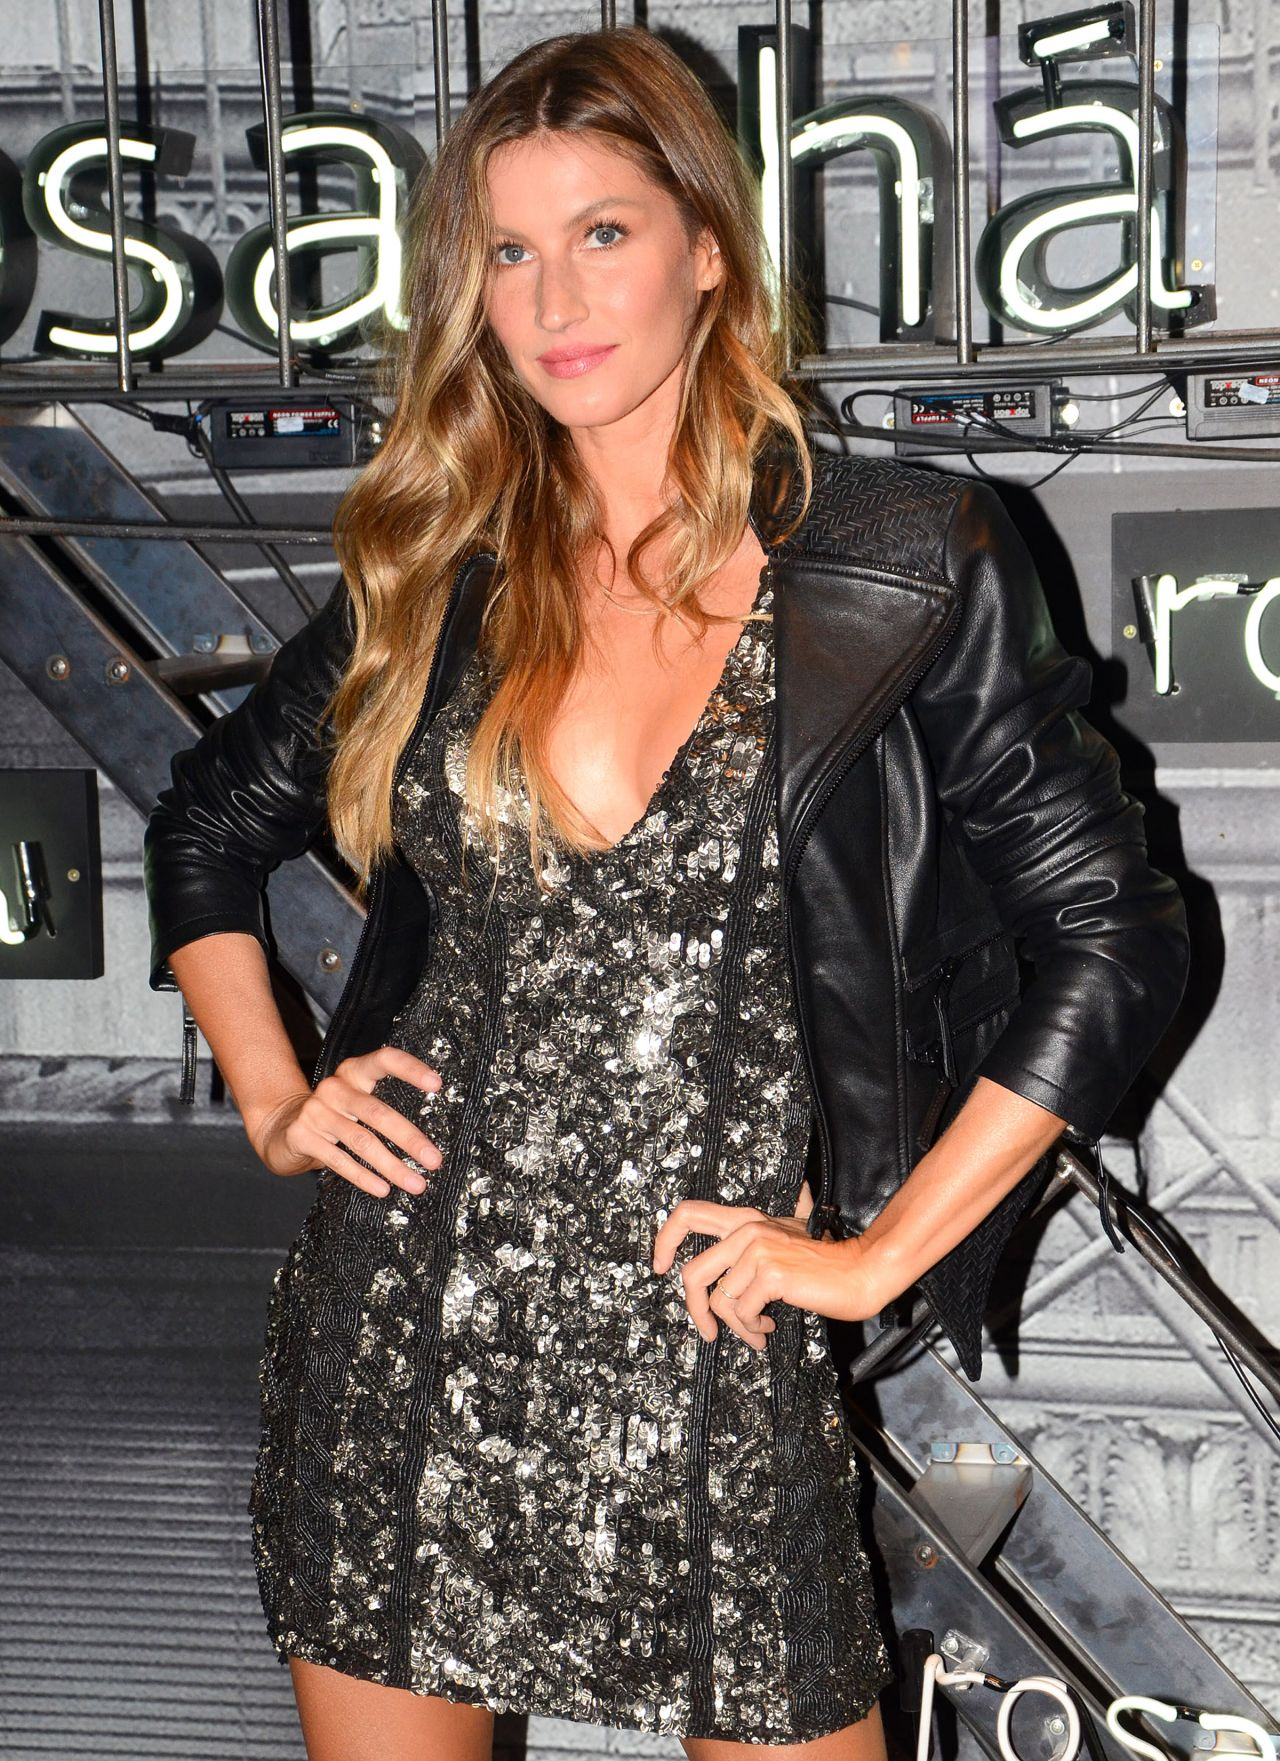 Gisele Bundchen - Rosa Cha Summer Collection Lauch Event ... Gisele Bundchen